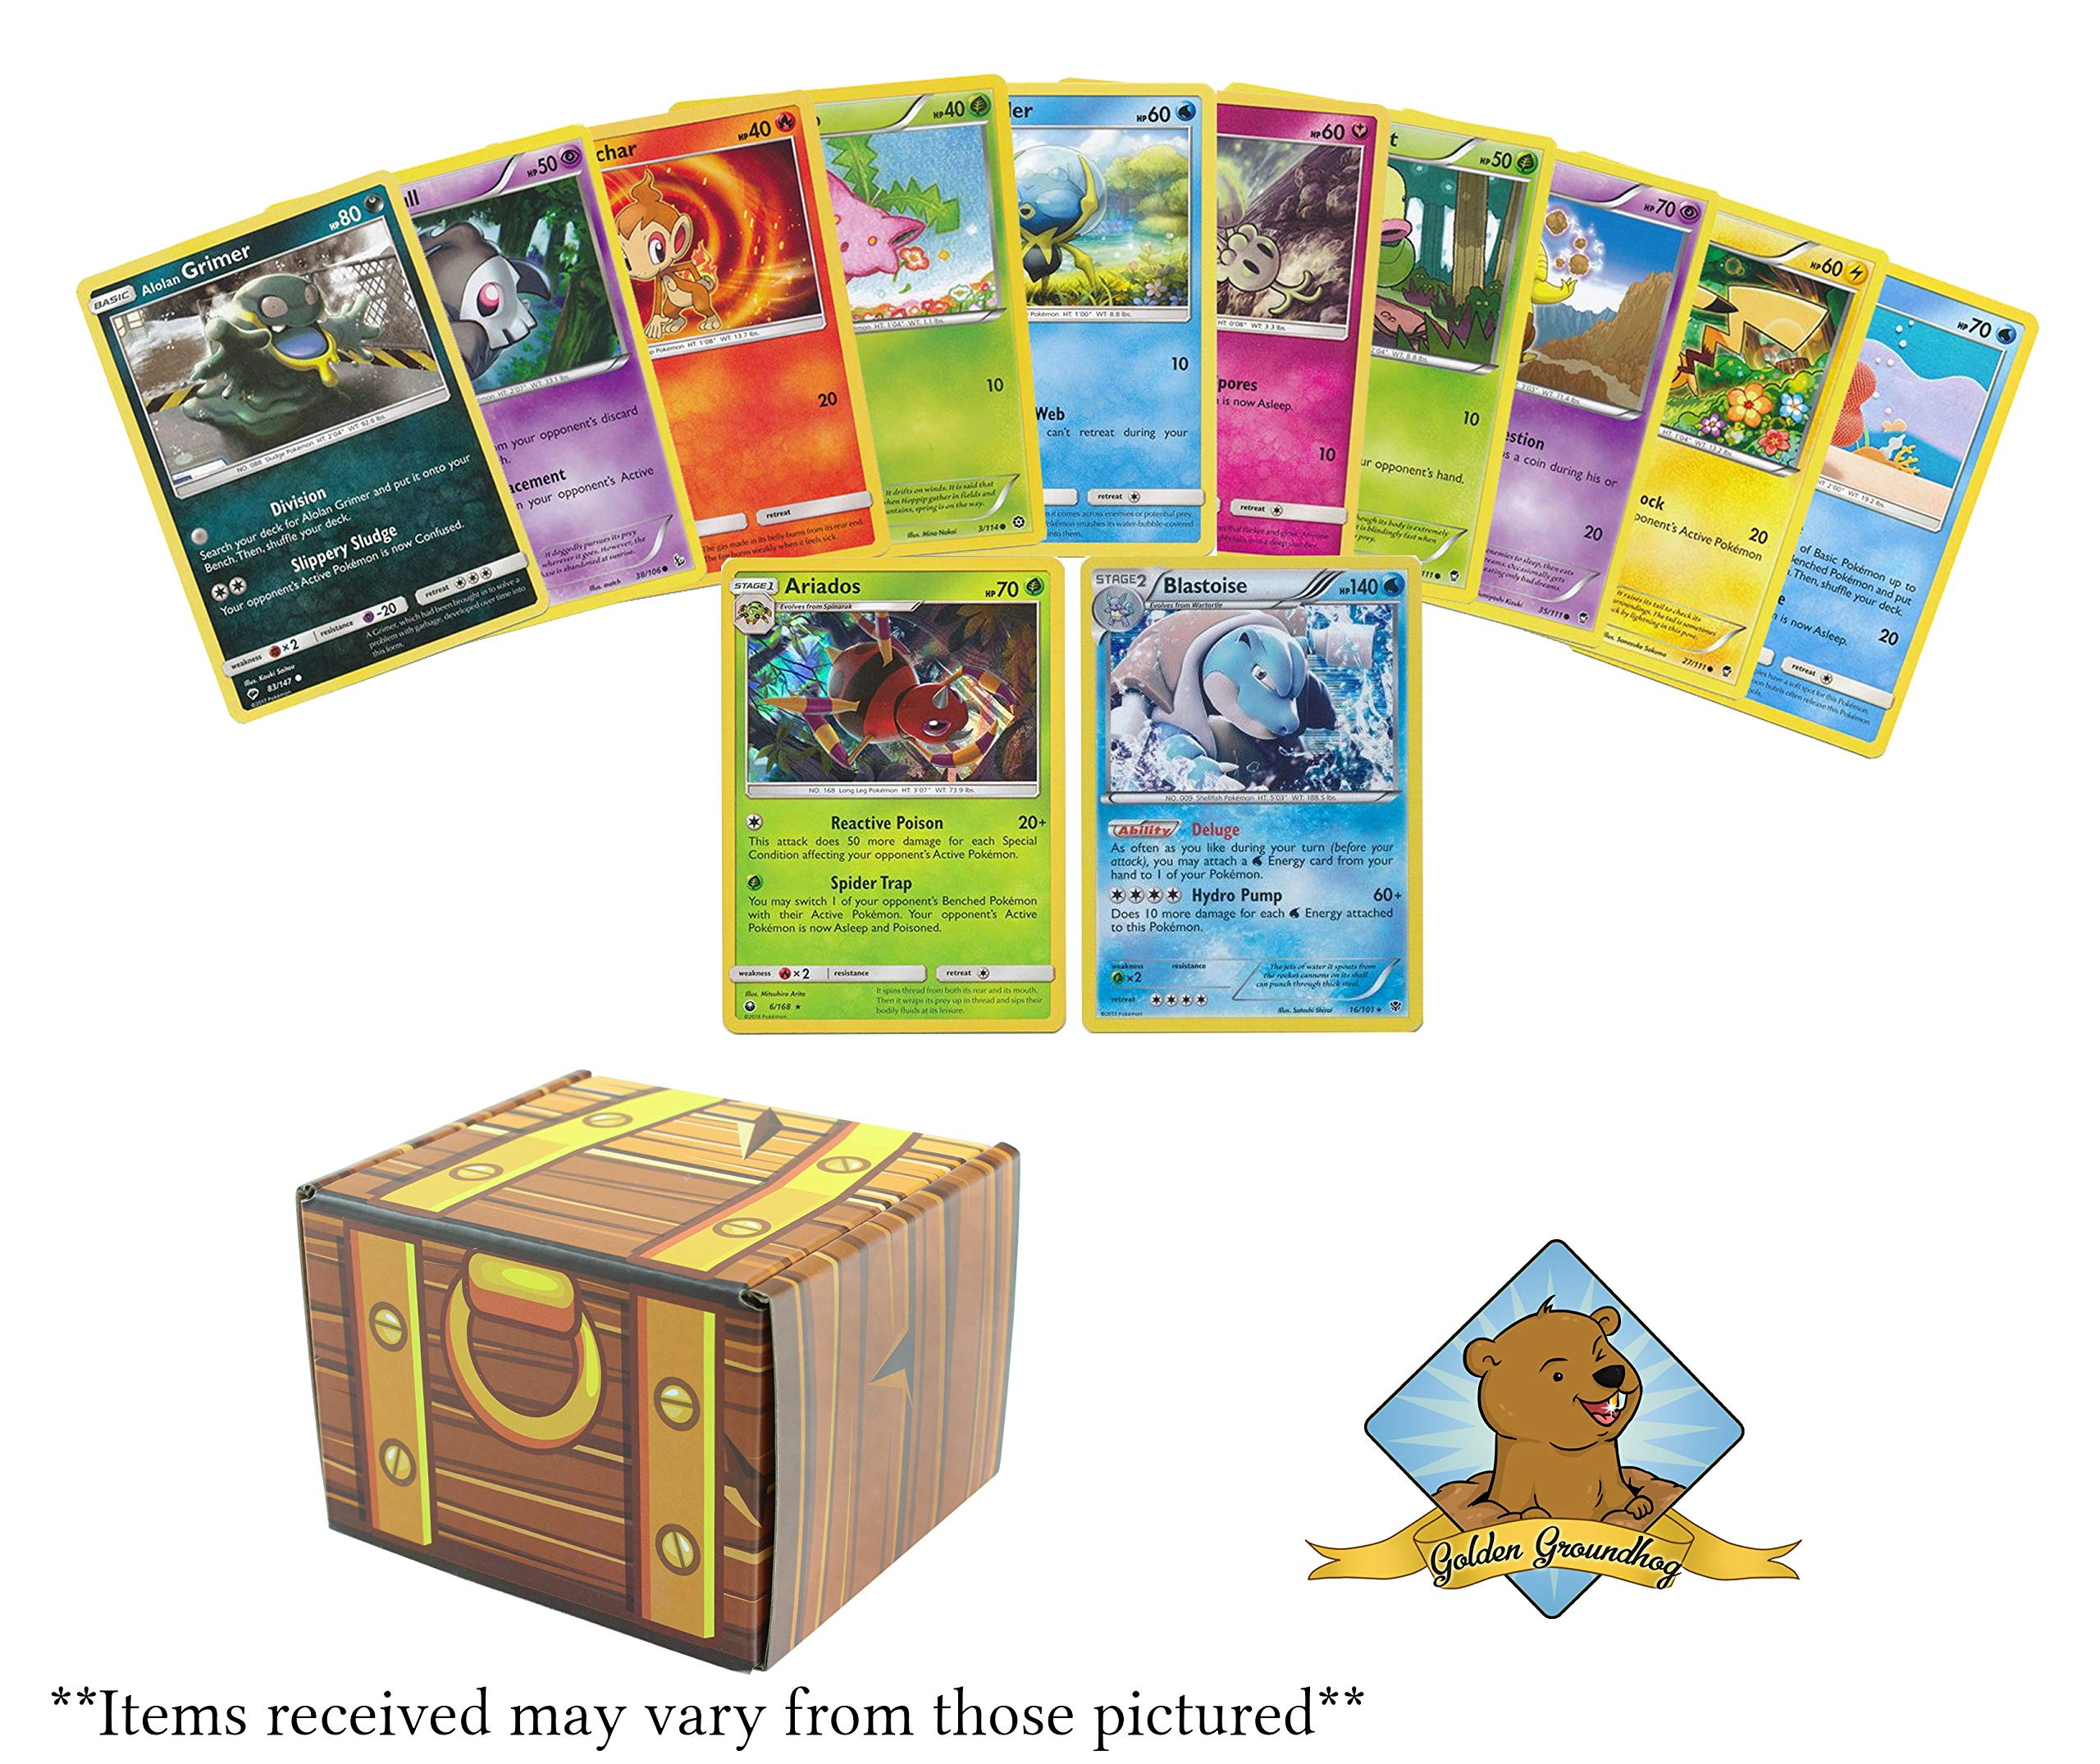 50 Pokemon Cards 2 Holo Rares! Includes Golden Groundhog Treasure Chest Box!